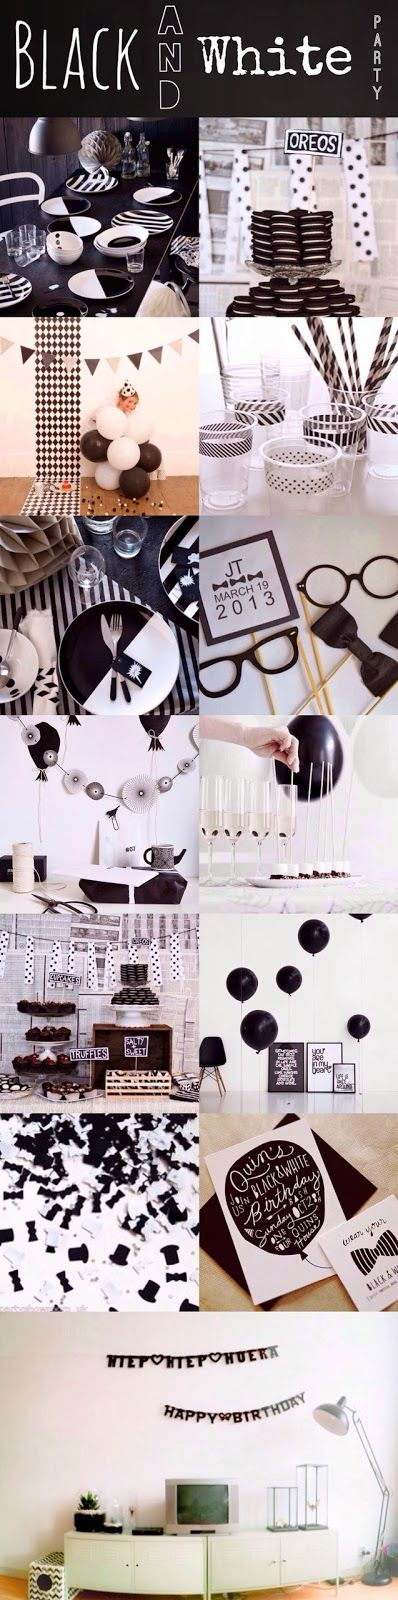 Black & White Theme Party Ideas || onihomemade.blogspot.com ||